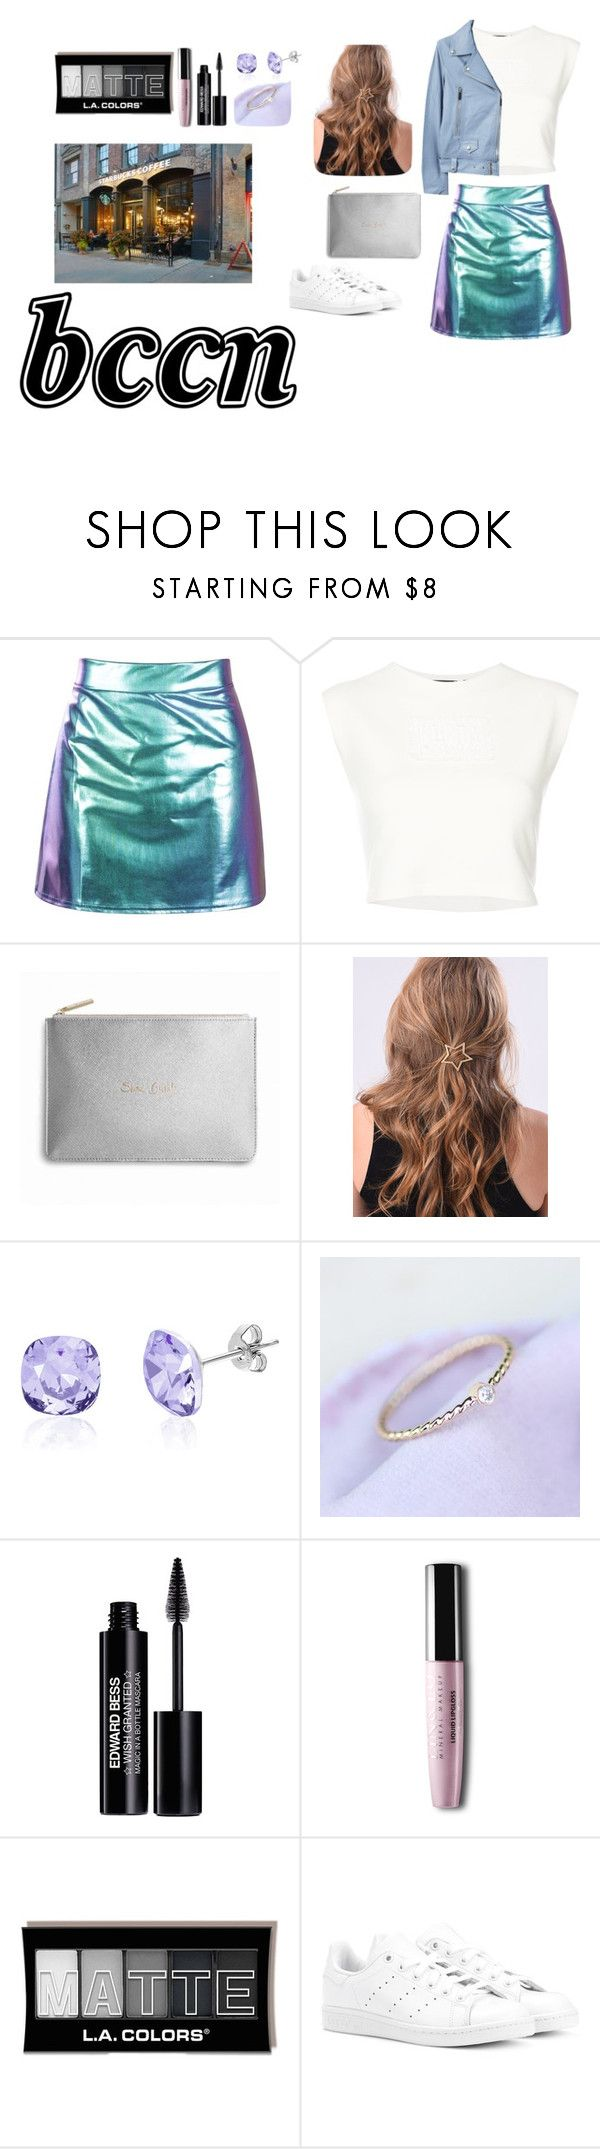 """""""OUTFIT"""" by beyzaa-c on Polyvore featuring moda, Puma, WithChic, Edward Bess, adidas Originals ve MANGO"""